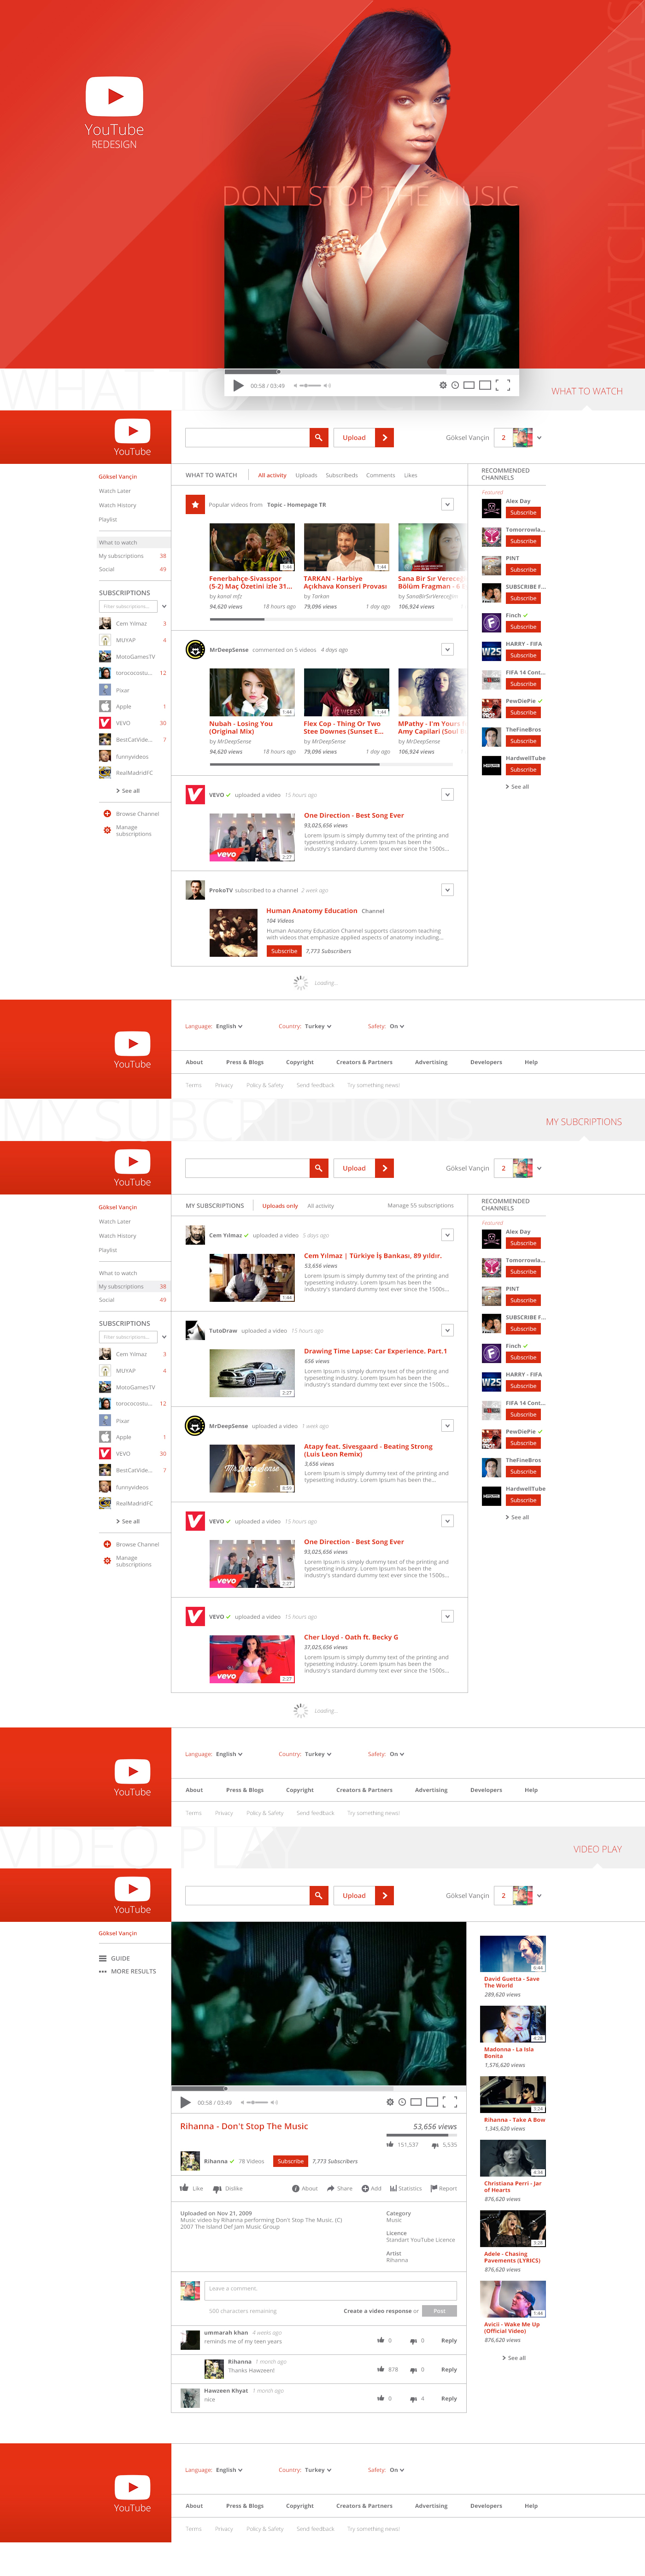 video share social google youtube official movie clip Entertainment subscribe upload sharing view watch watching